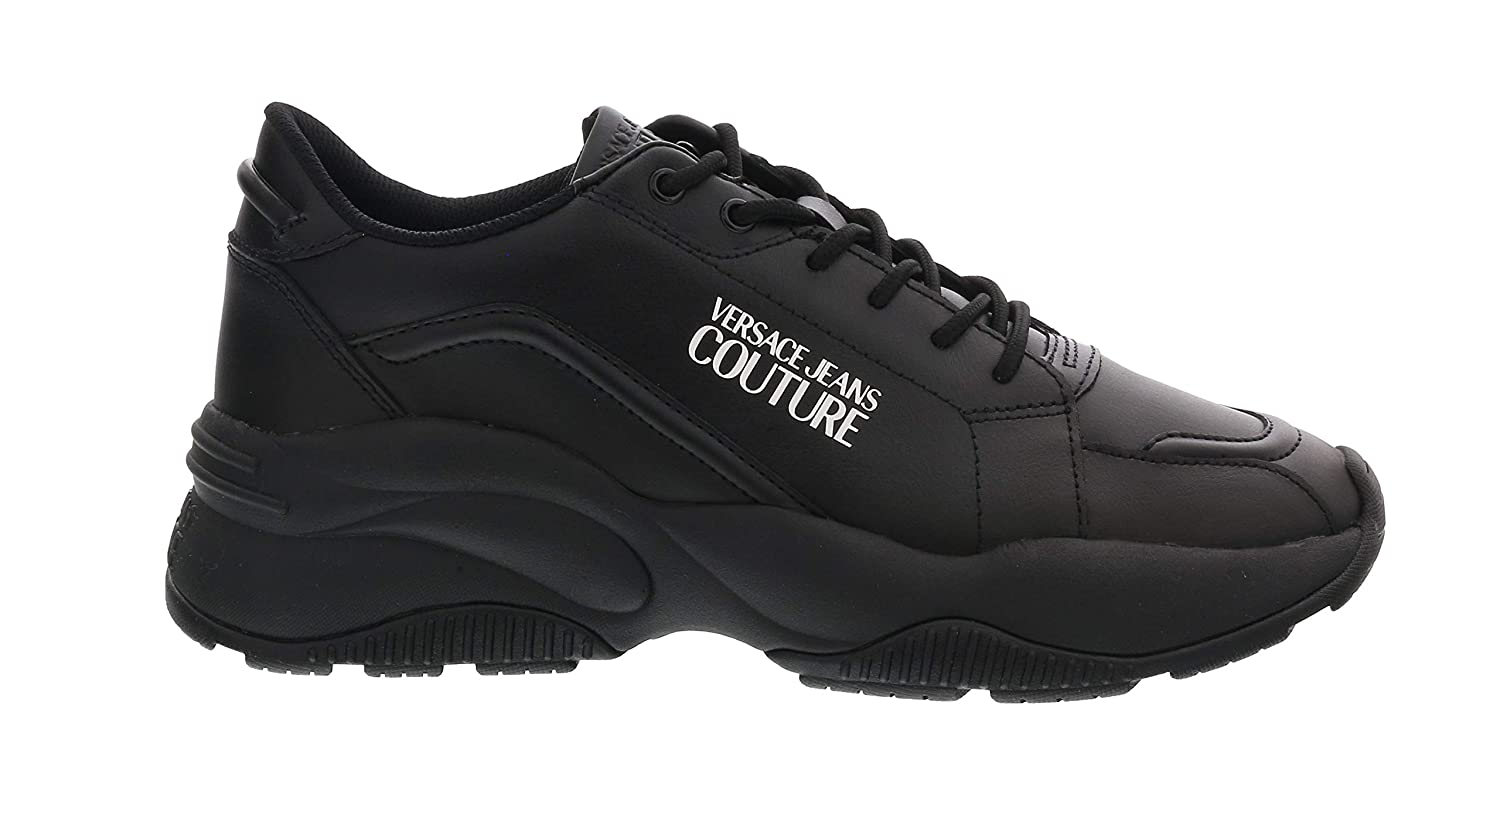 for Mens Versace Jeans Couture Black Leather Extreme Fashion Chunky Sneakers